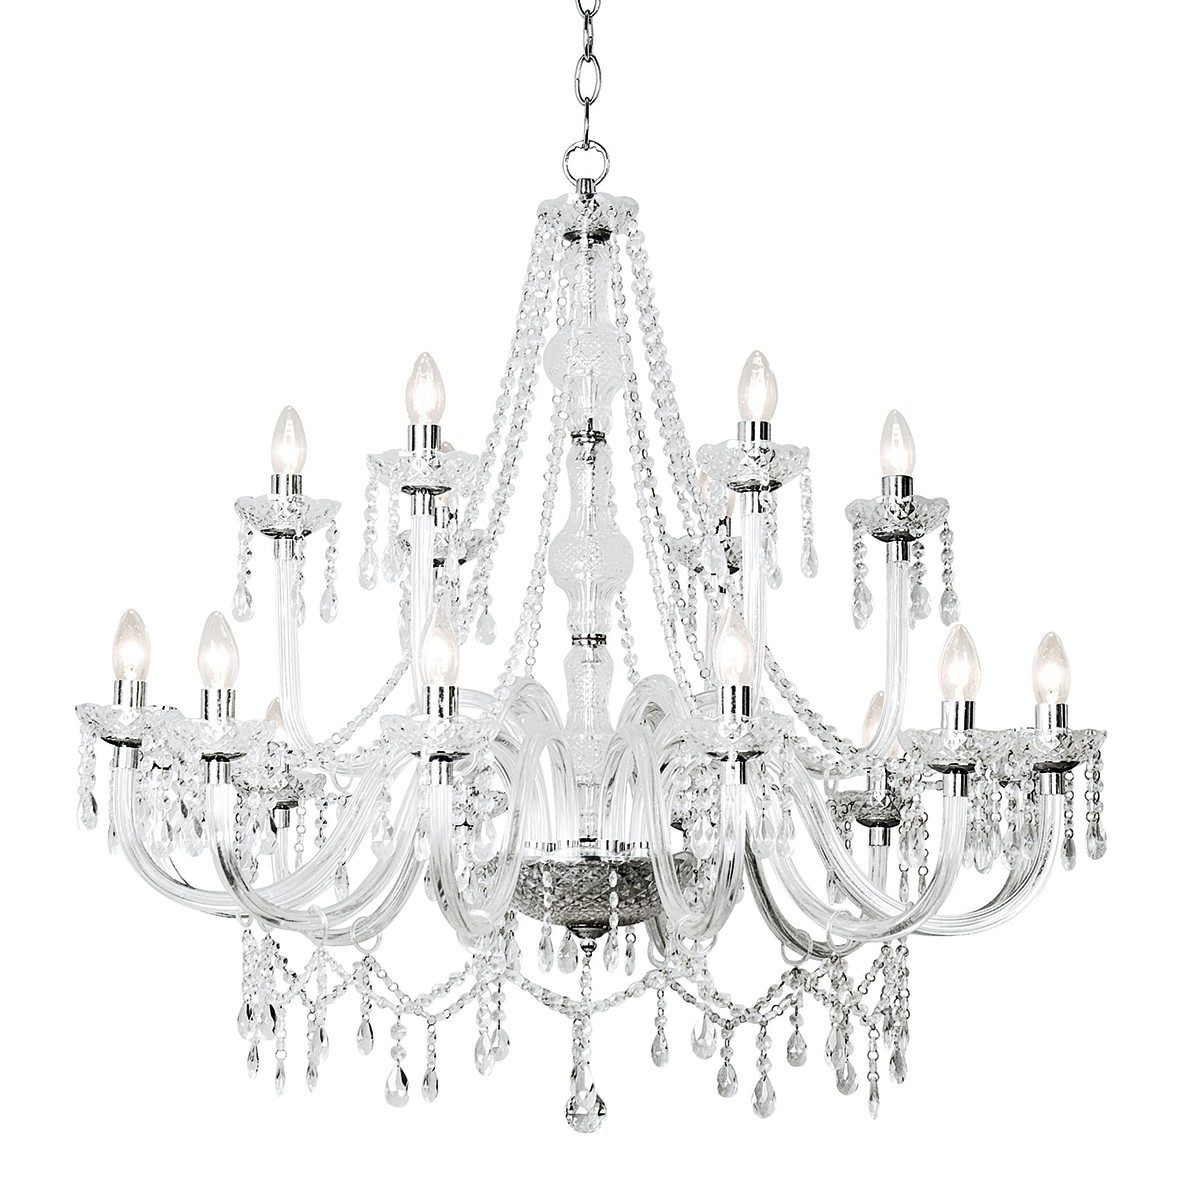 Katie 18 Light Chandelier Dual Mount Acrylic Glass Shade Sold Separately throughout Preferred Acrylic Chandelier Lighting